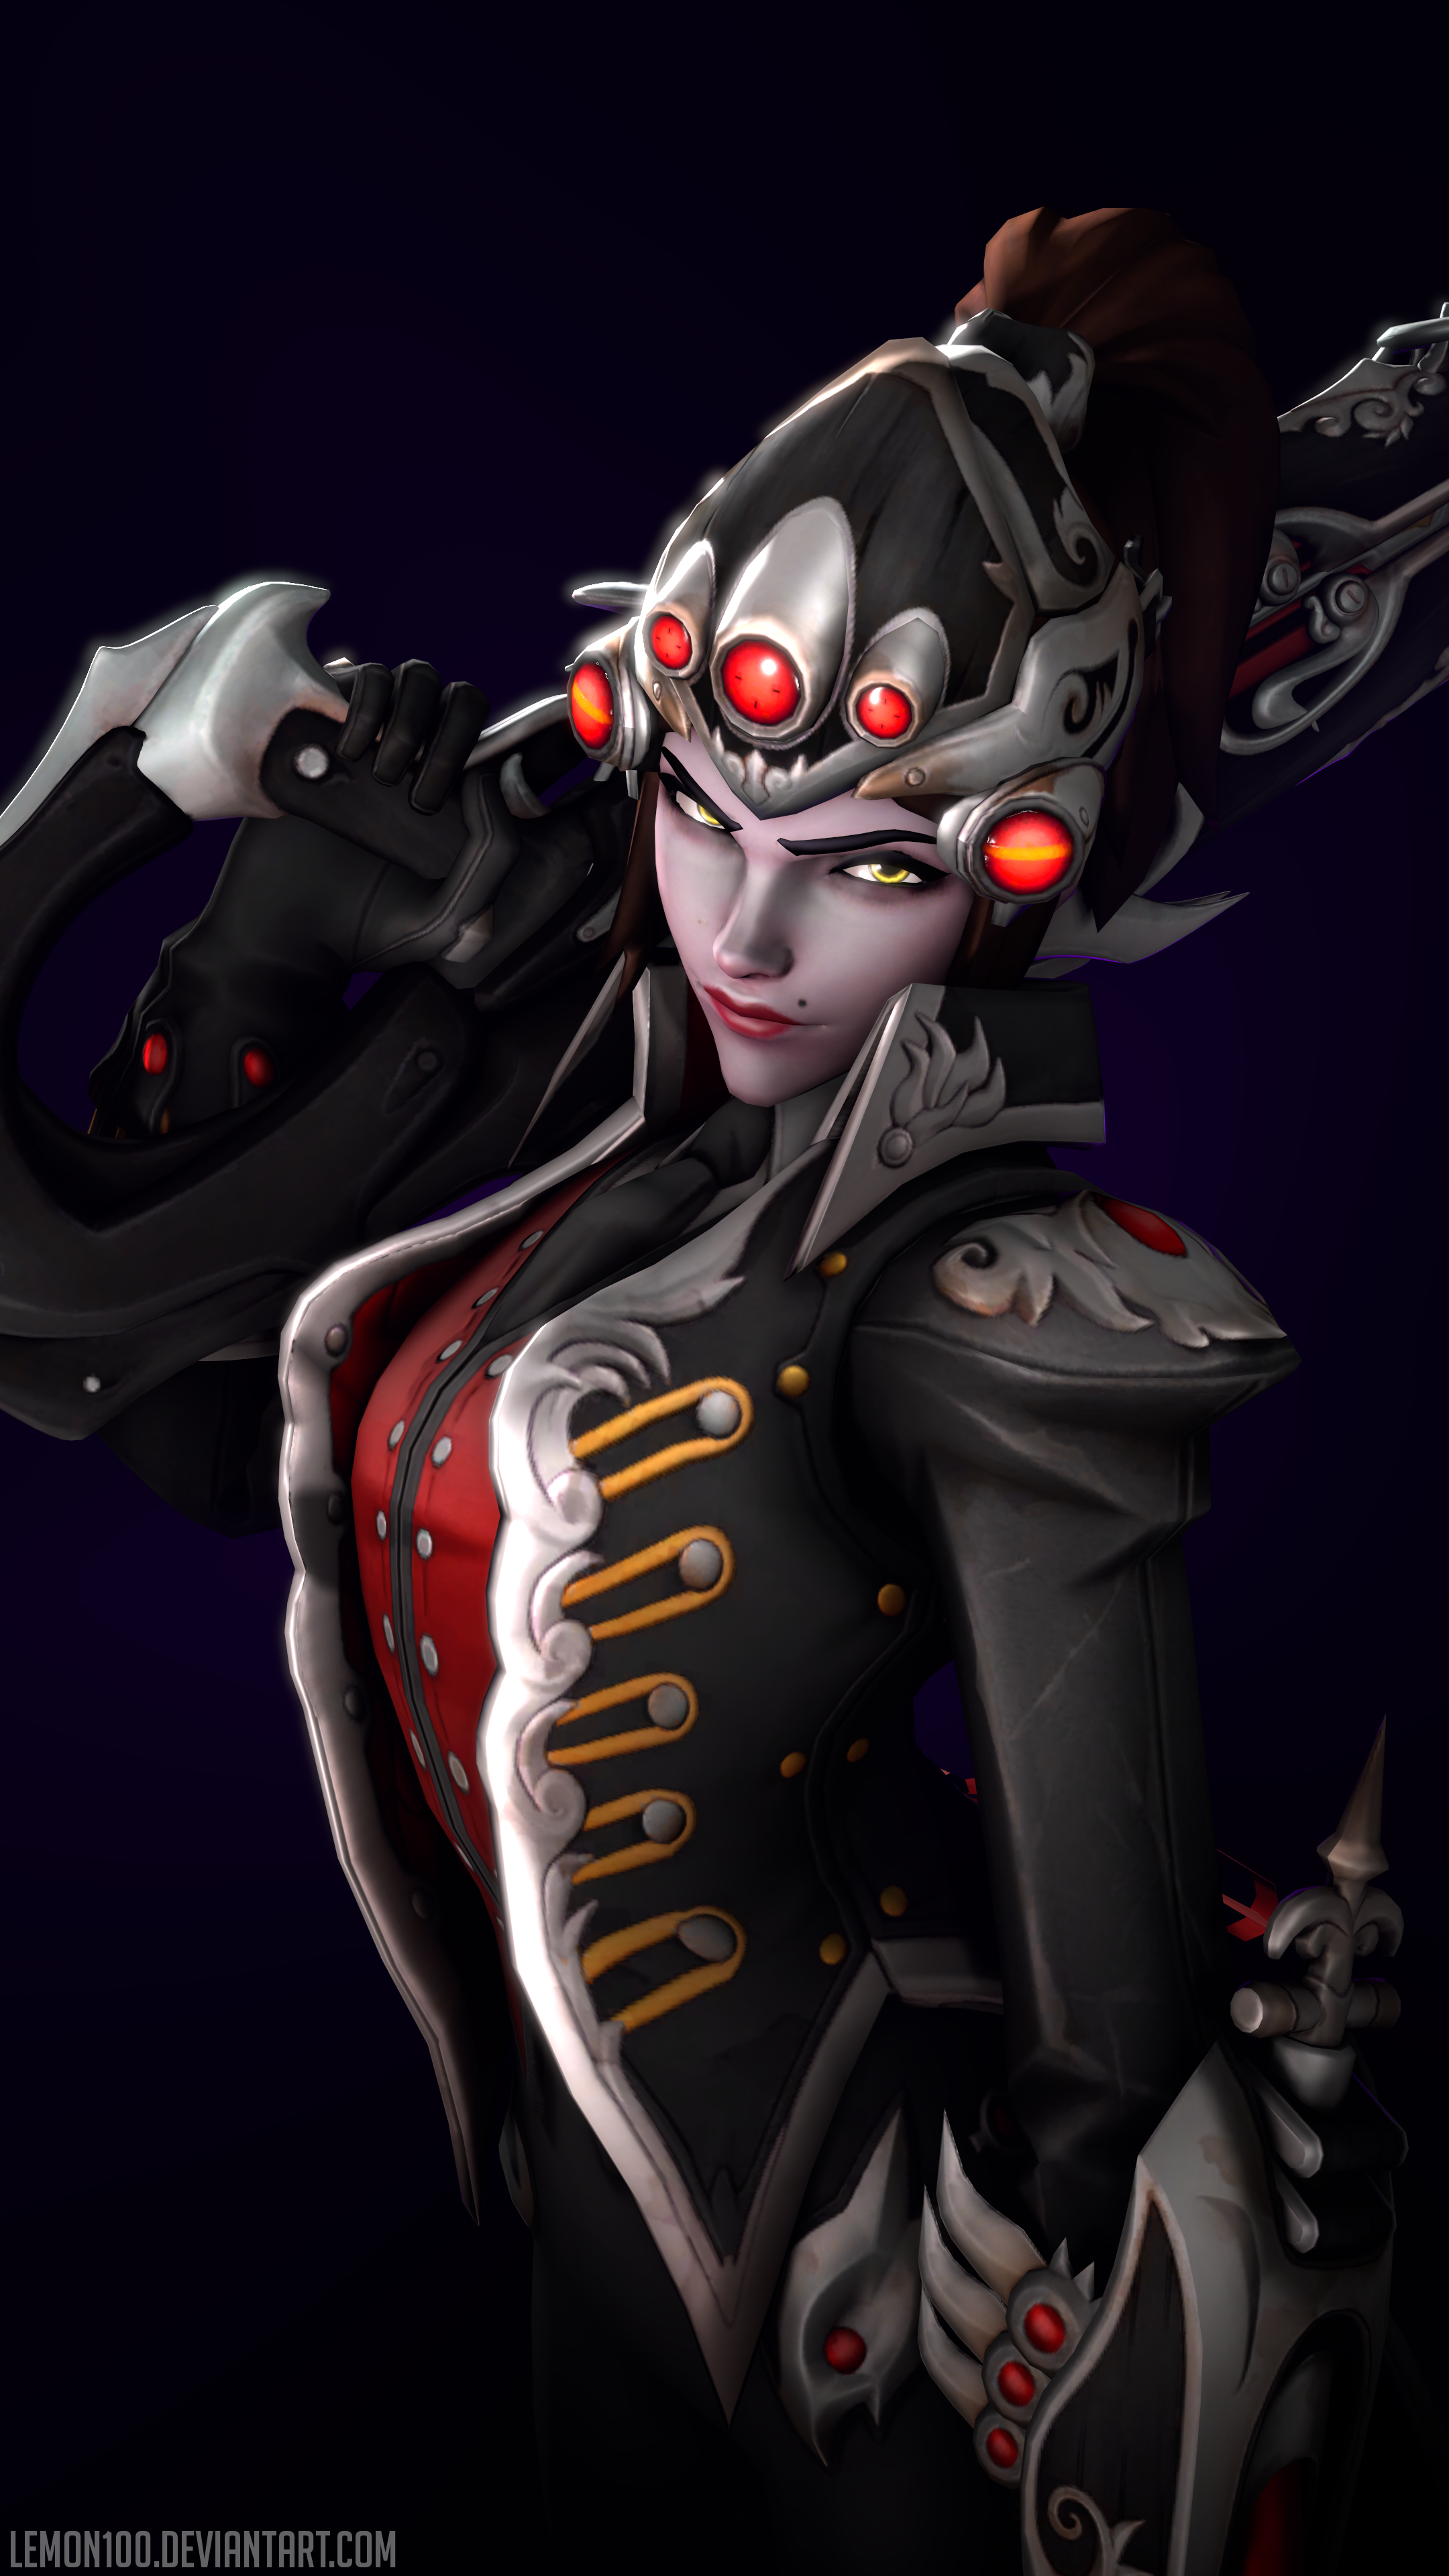 Widowmaker Huntress - Overwatch by lemon100 on DeviantArt